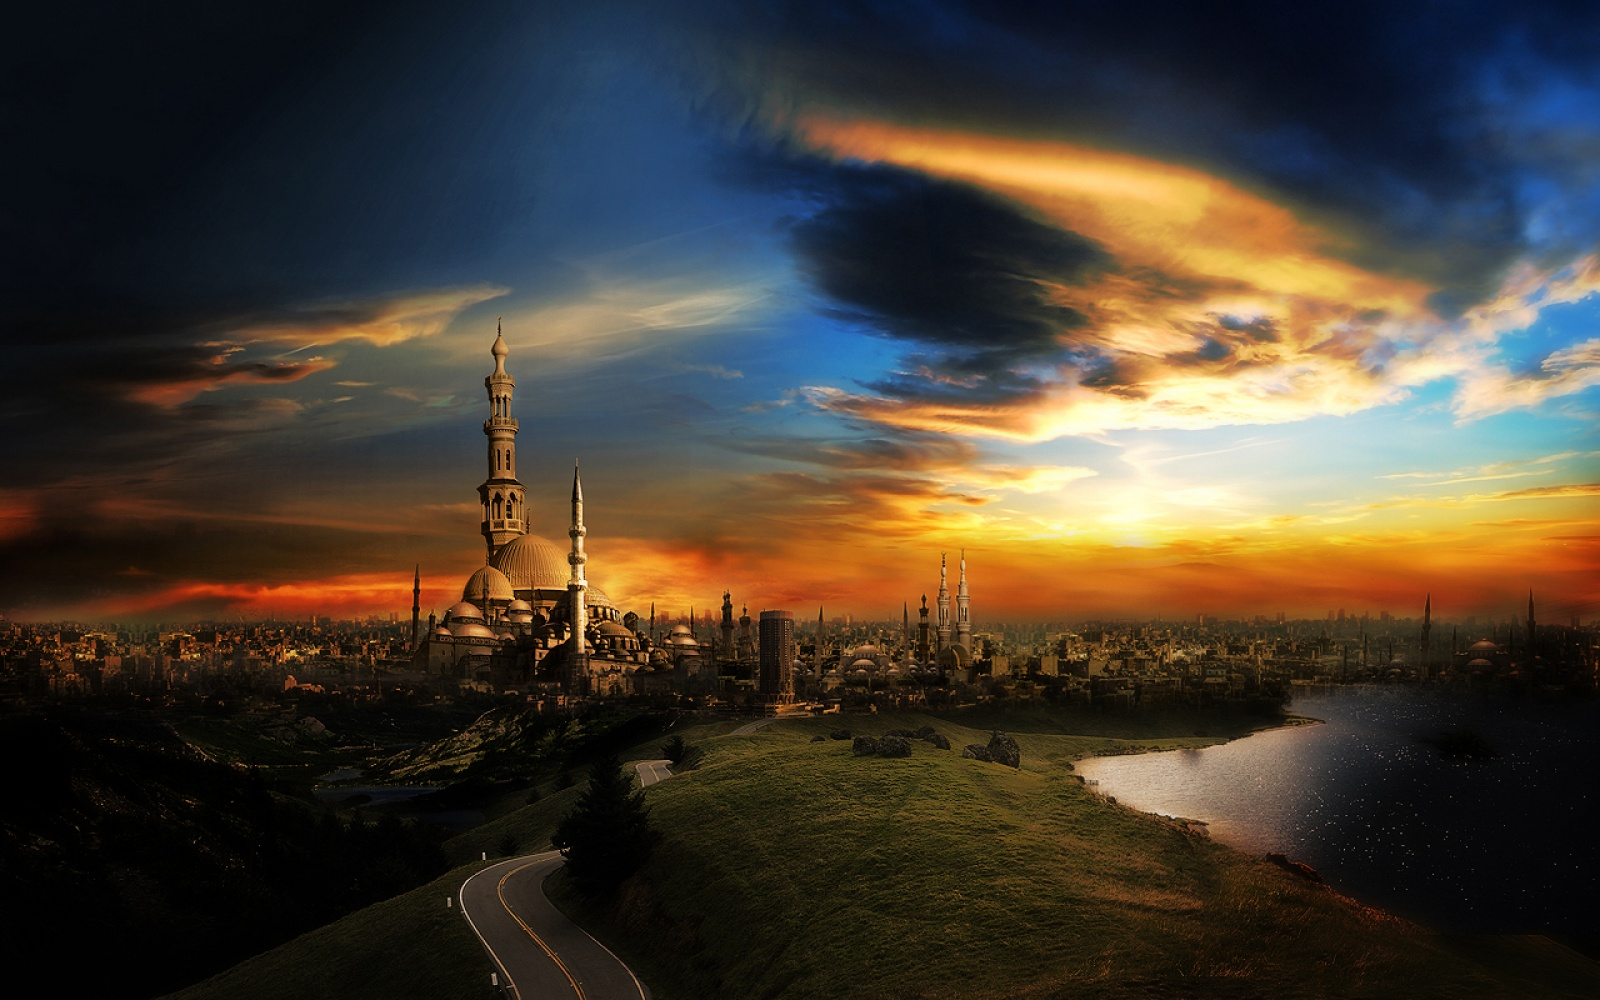 Egypt wallpapers | Egypt background - Page 11